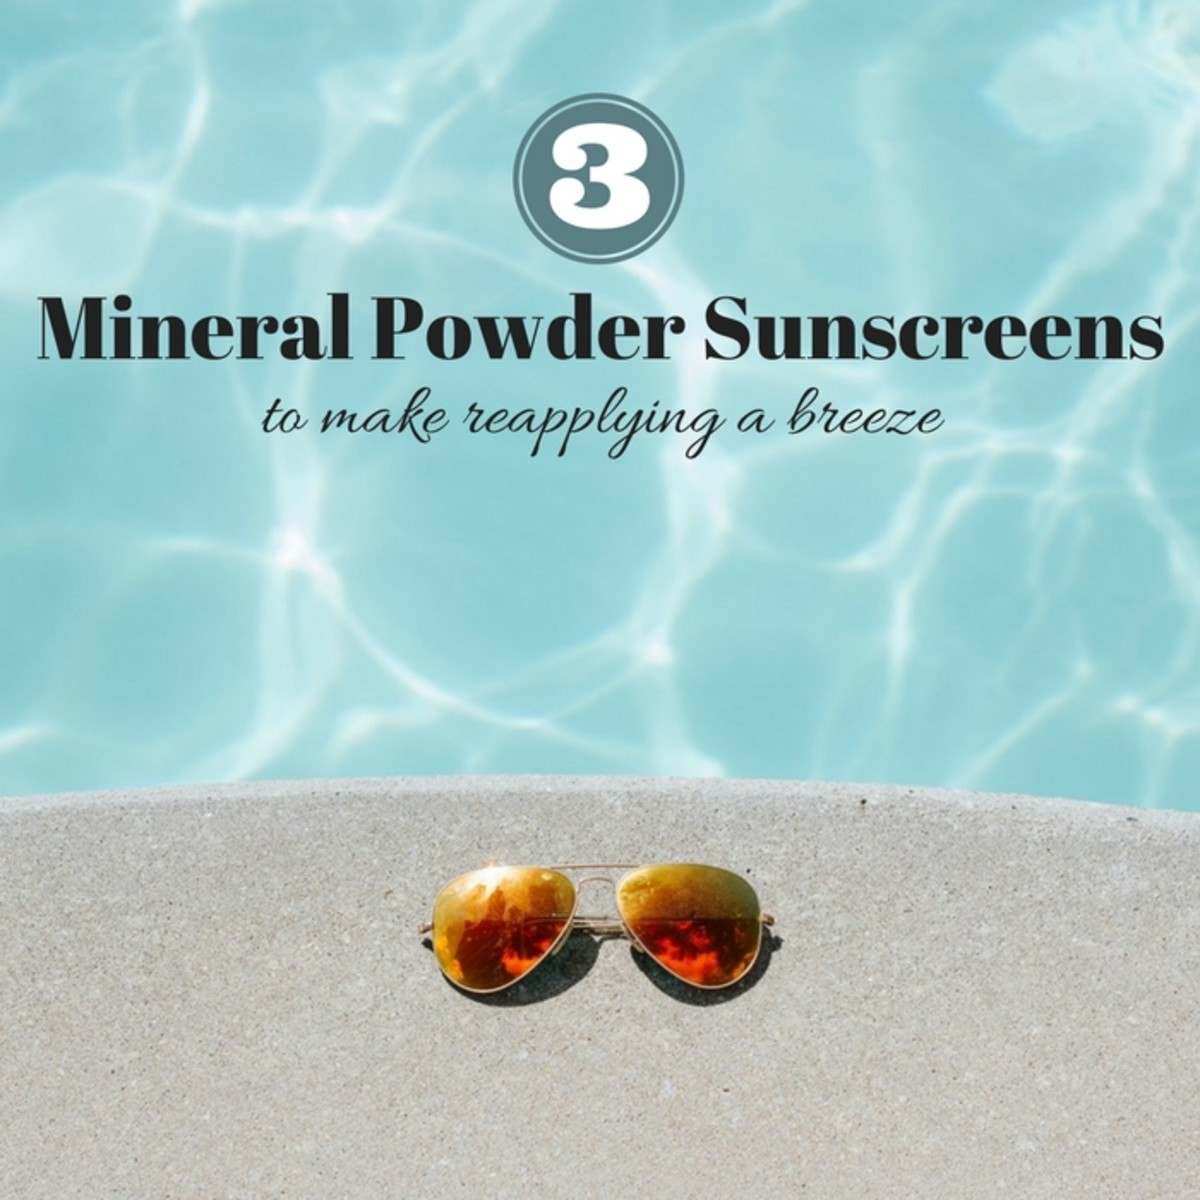 3 Mineral Powder Sunscreens